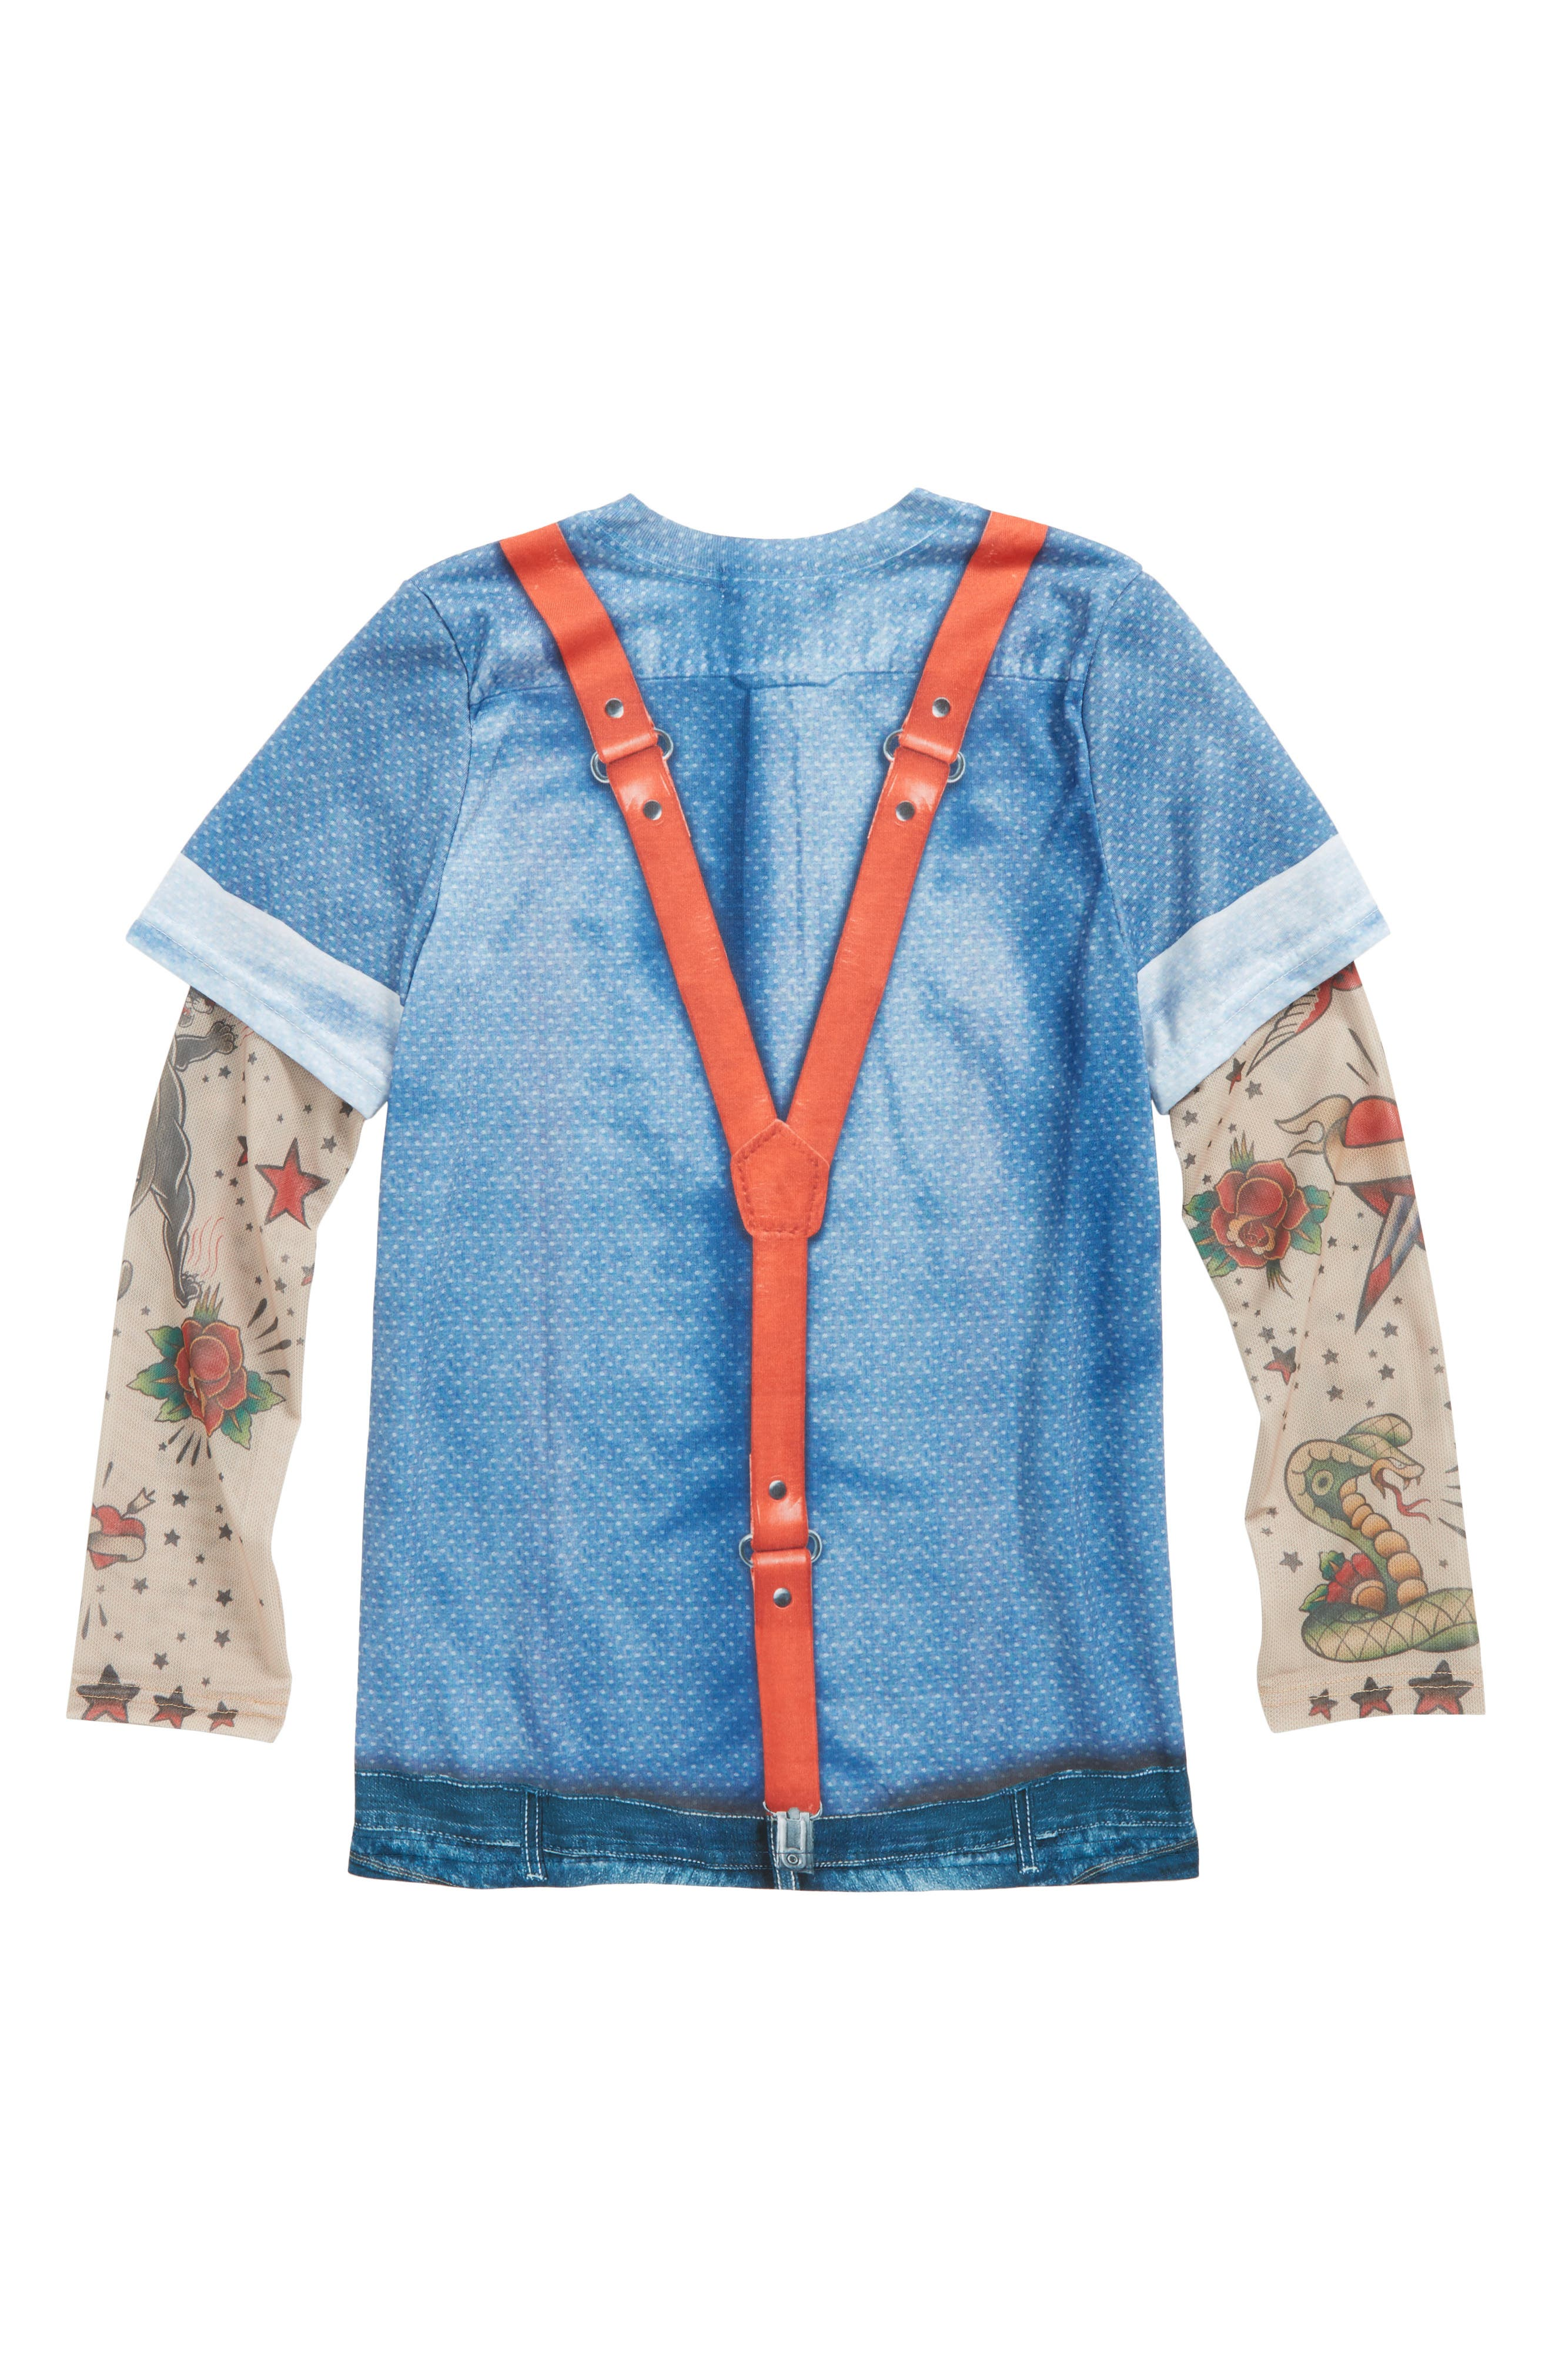 Hipster Tie & Suspenders T-Shirt with Tattoo Print Sleeves,                             Alternate thumbnail 2, color,                             400